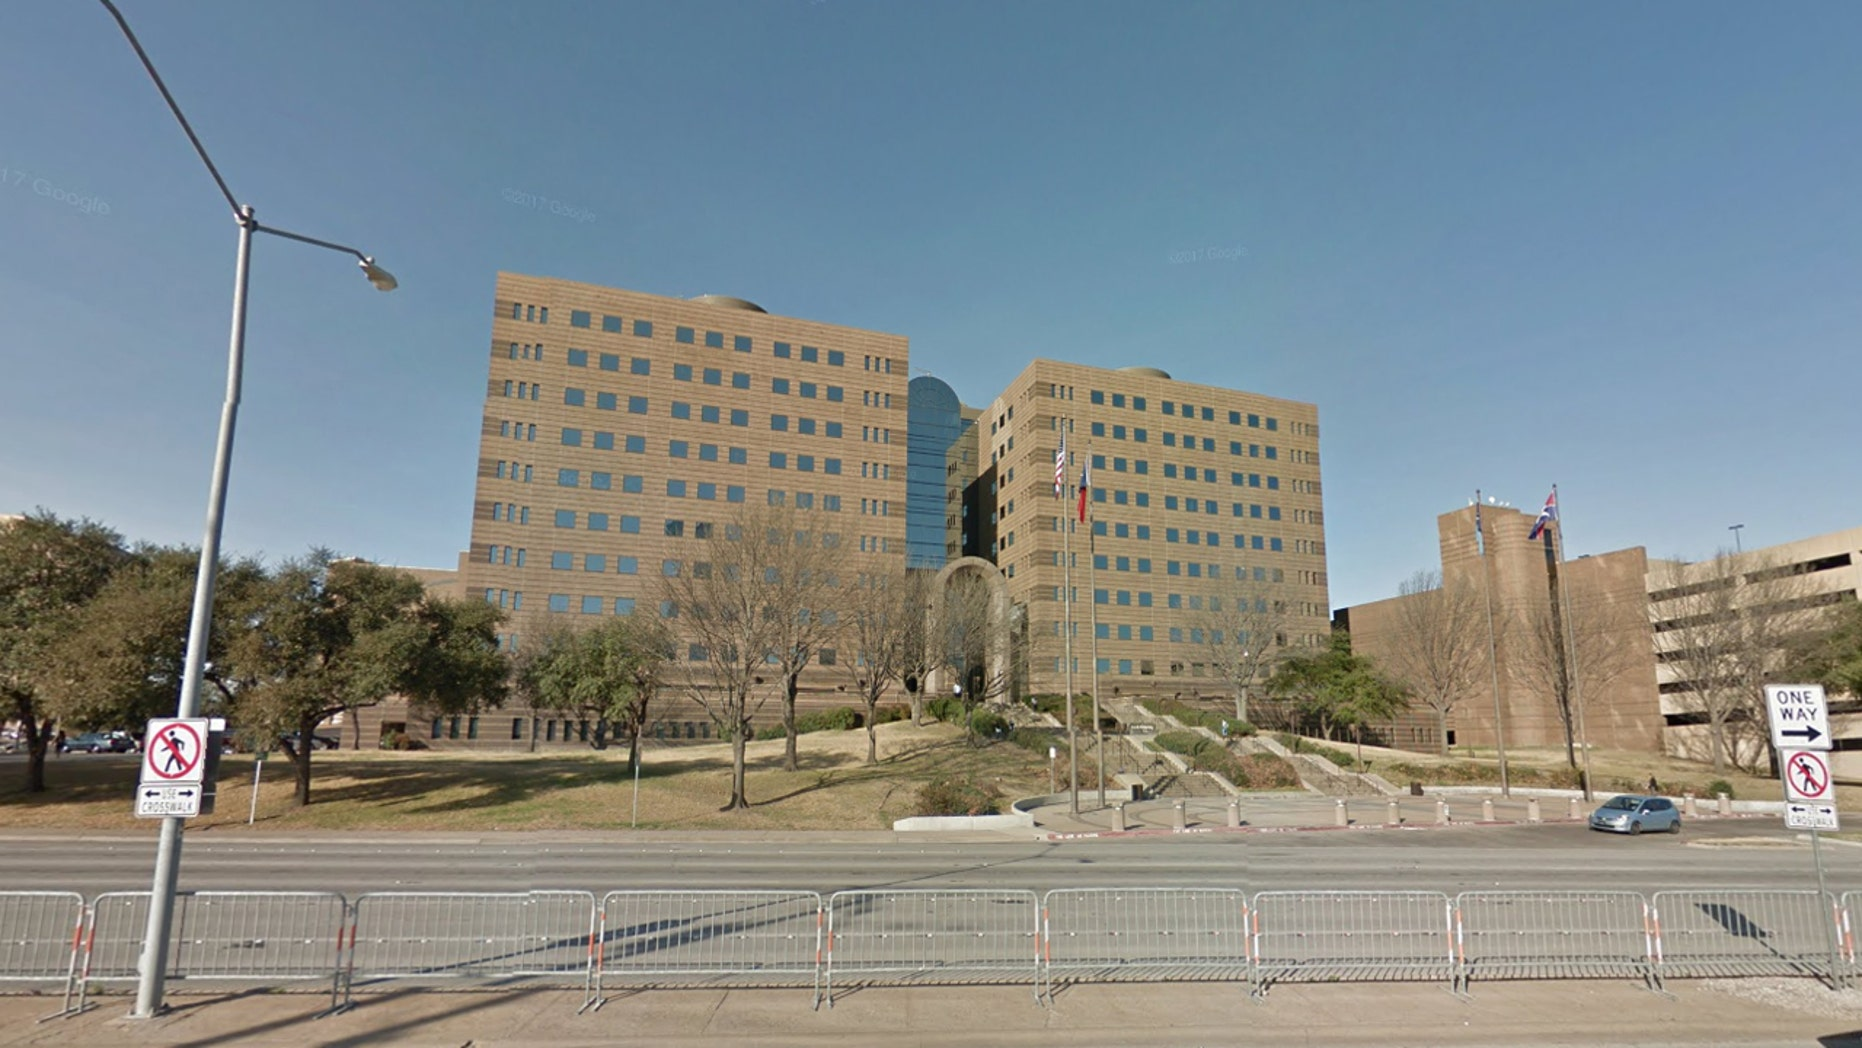 The Frank Crowley Courts Building in Dallas, where the Dallas County District Attorney's Office is located.